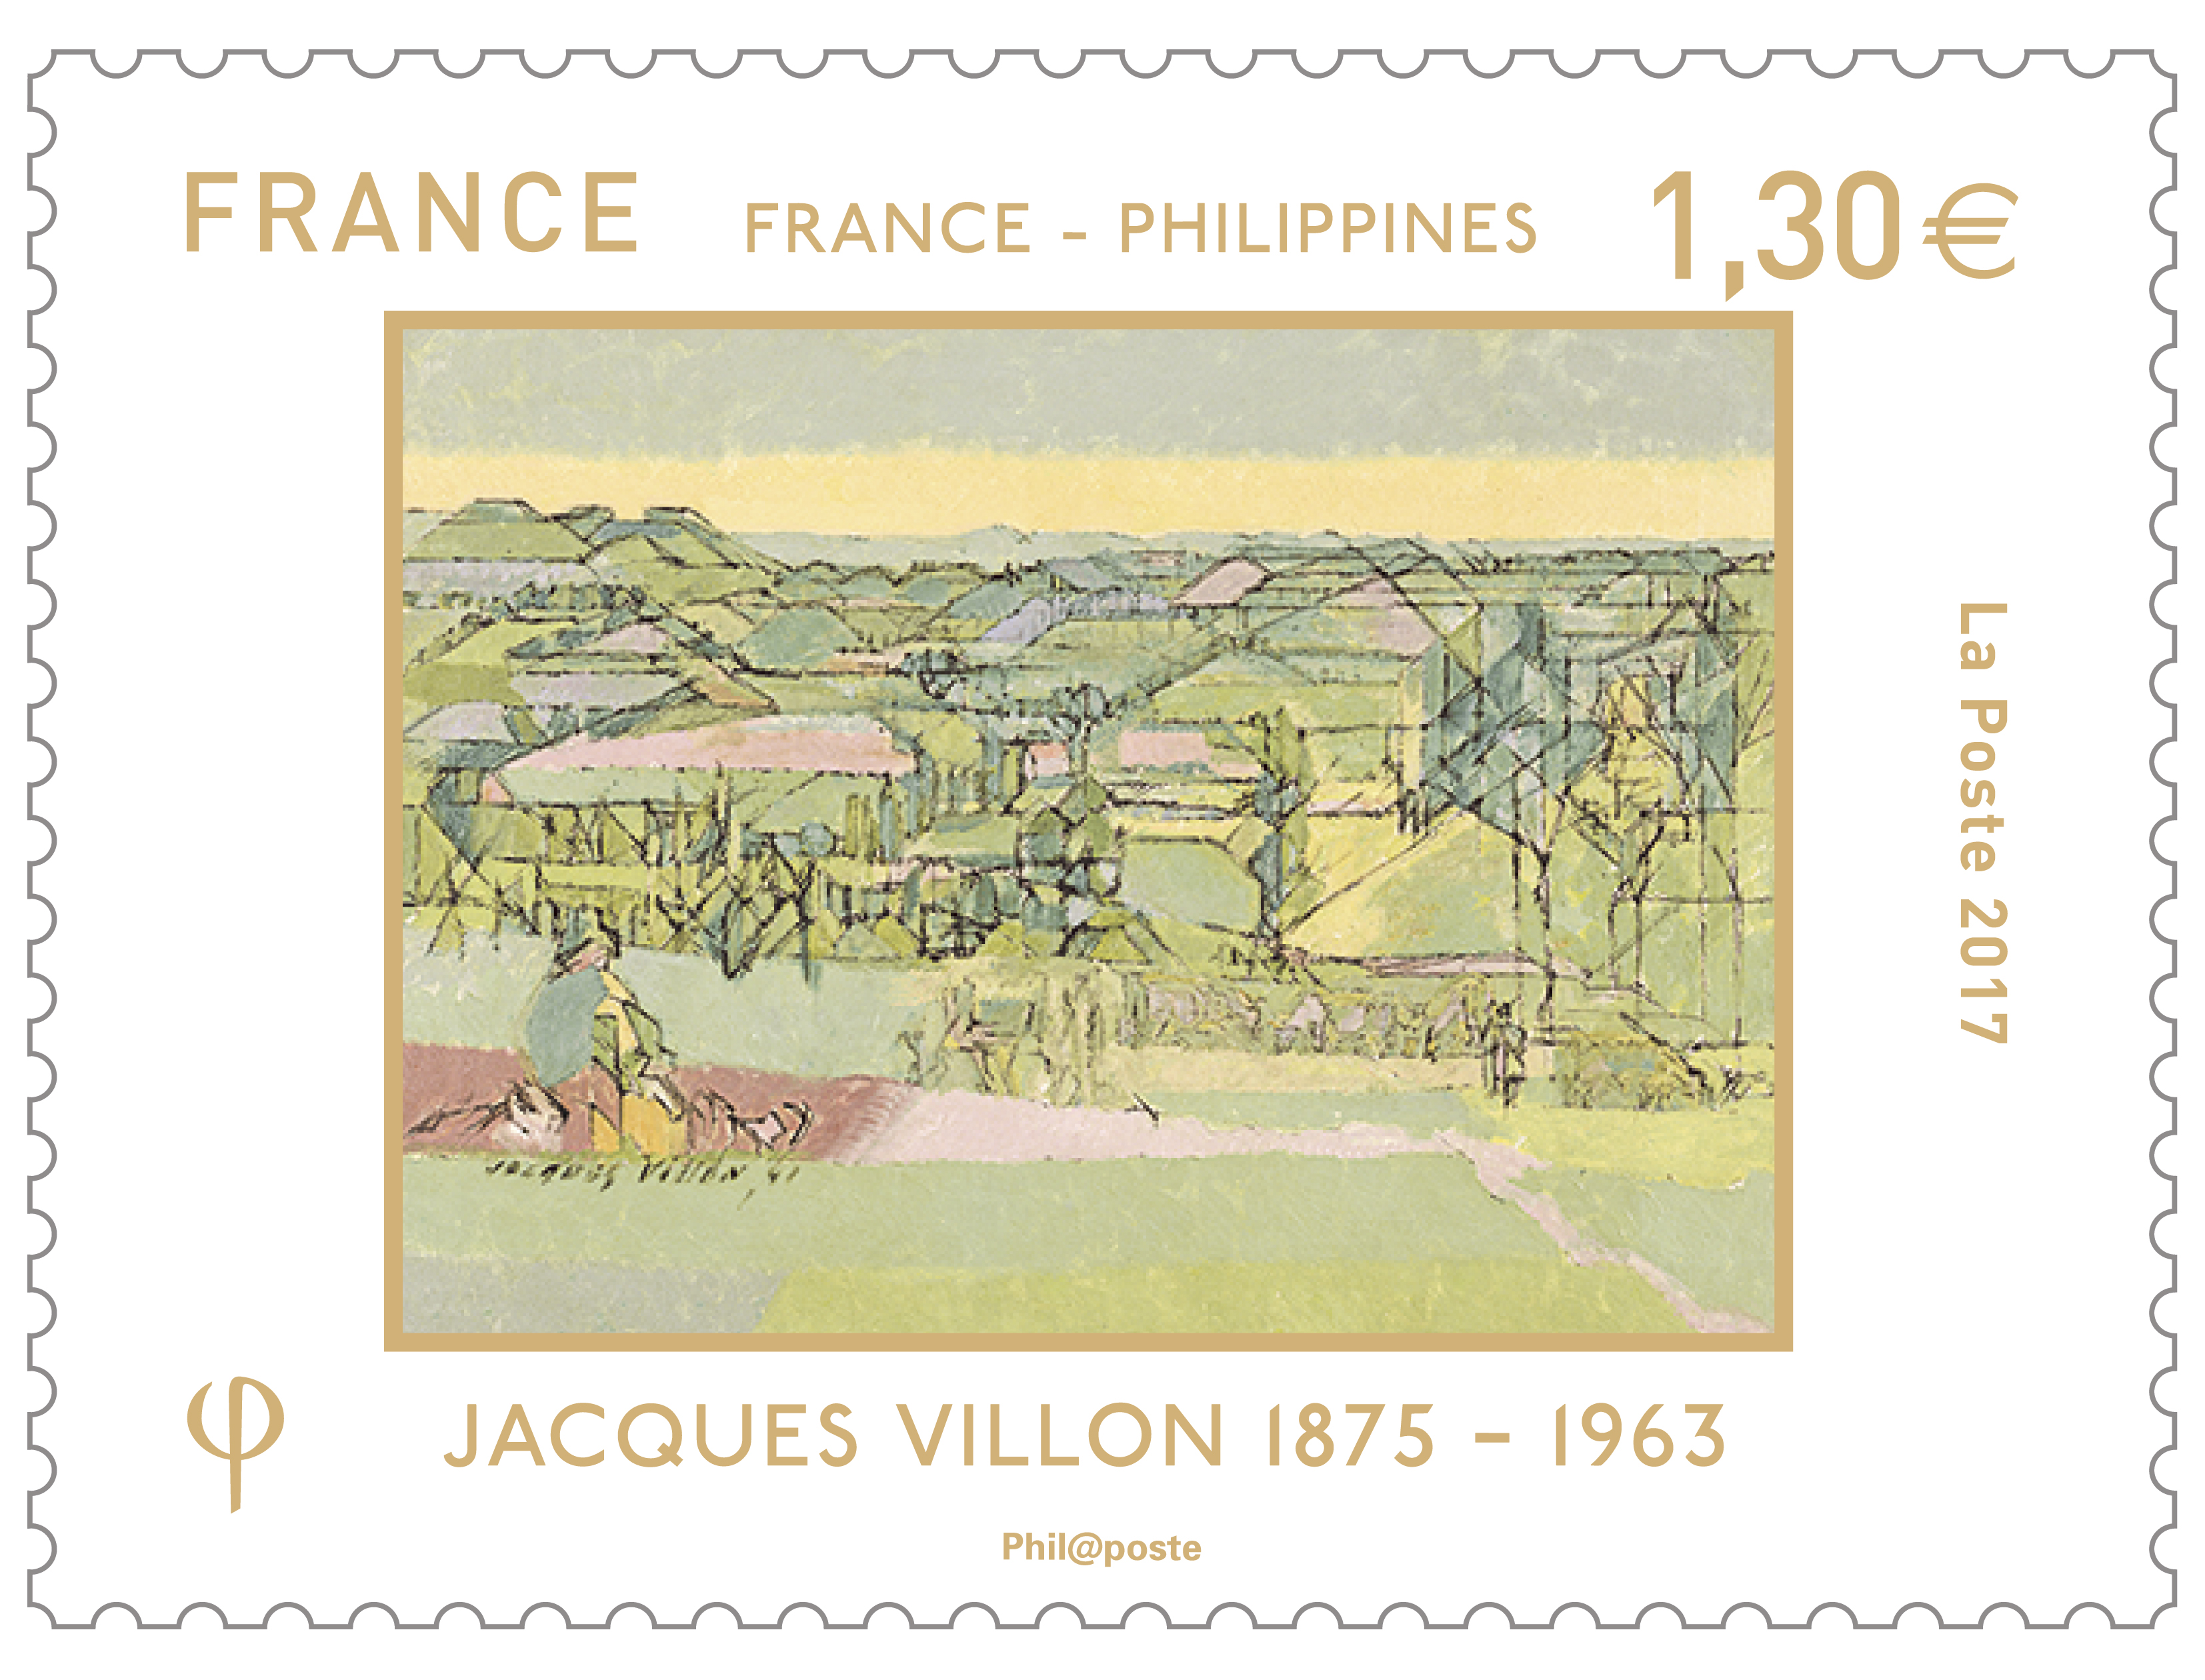 Emission 70 ans de relations diplomatiques entre la France et les Philippines